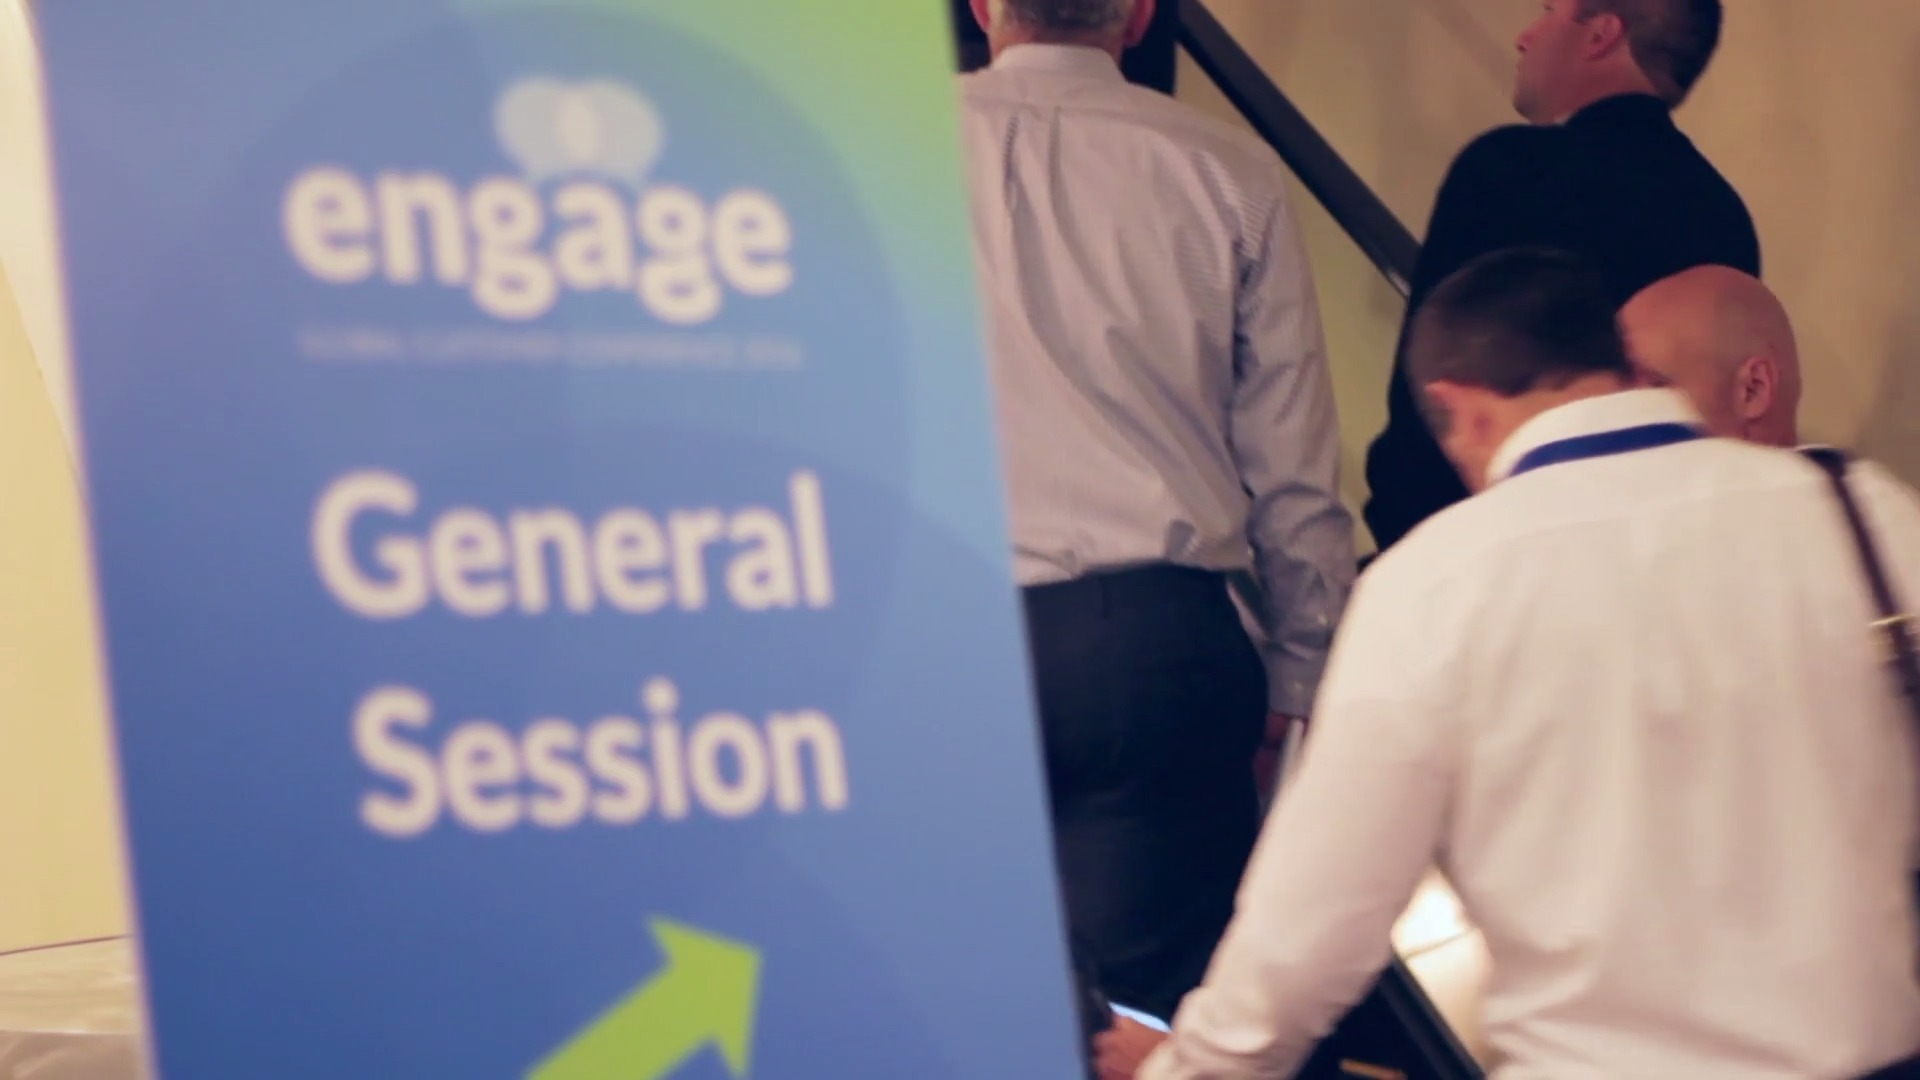 Engage Takeaways 2016